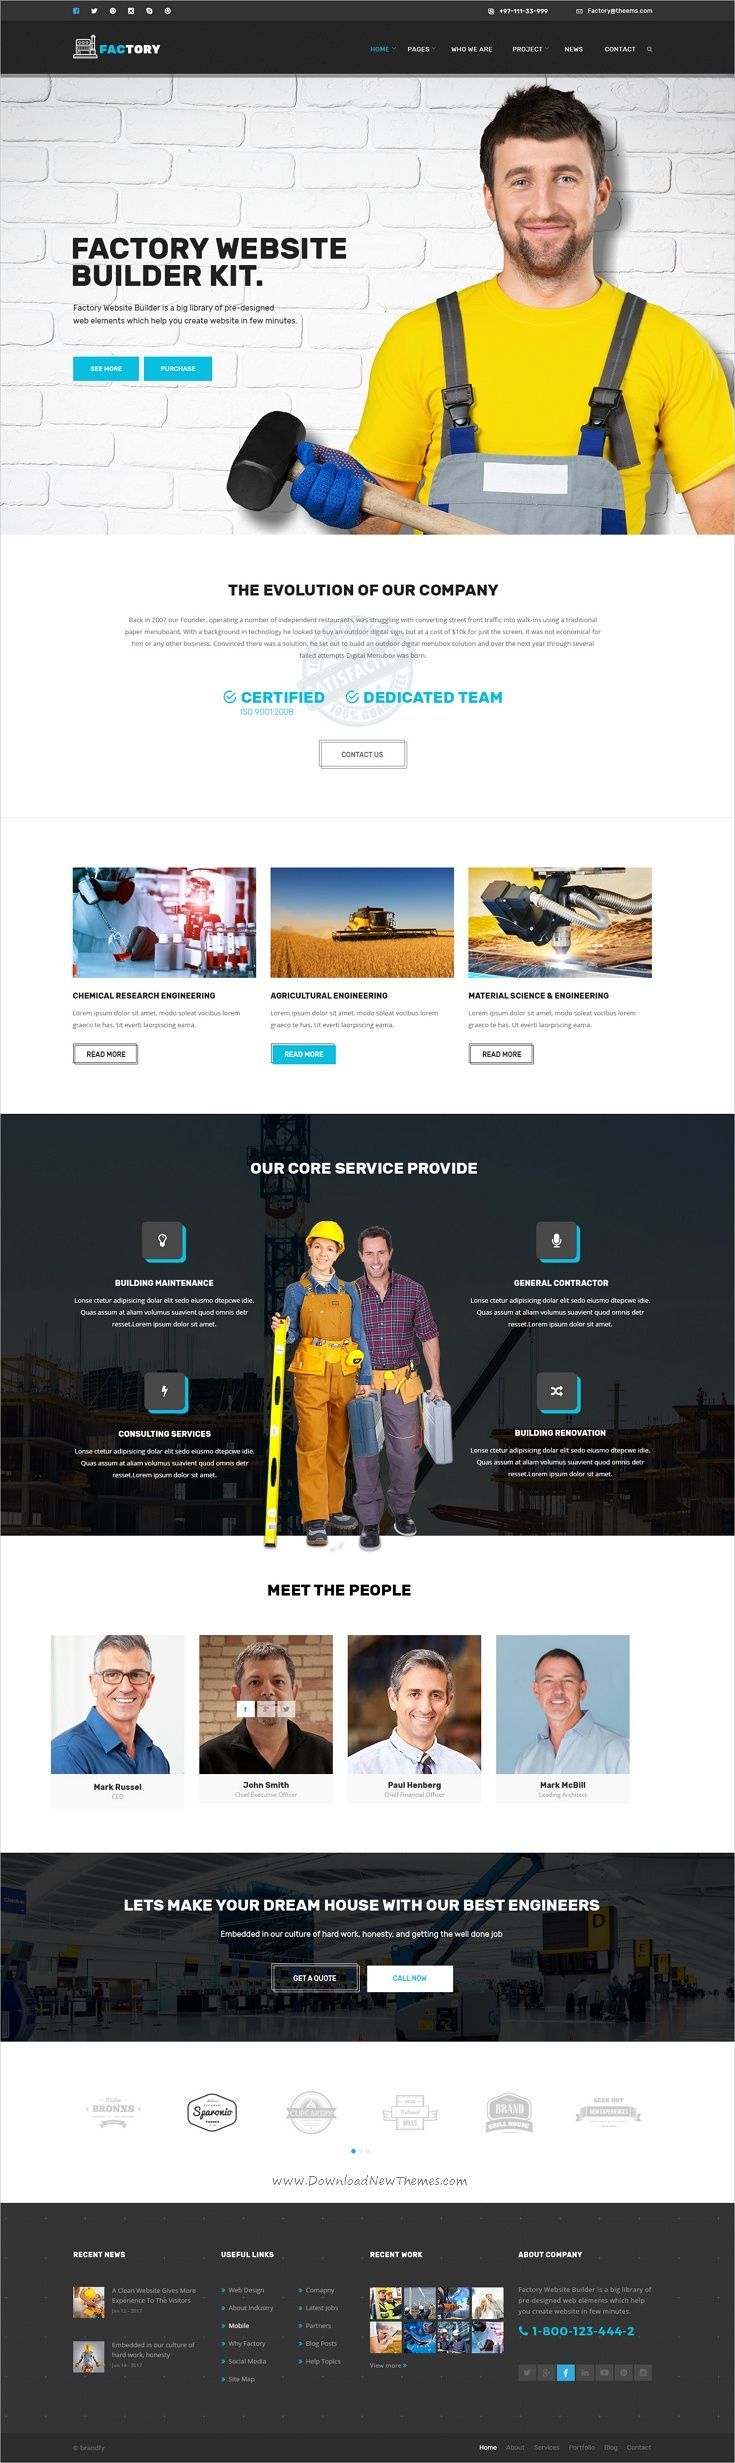 Factory is a modern design #PSD template for #industrial, mechanical, #engineering, construction company websites download now➩  https://themeforest.net/item/factory-industrial-business-psd-template/19035871?ref=Datasata